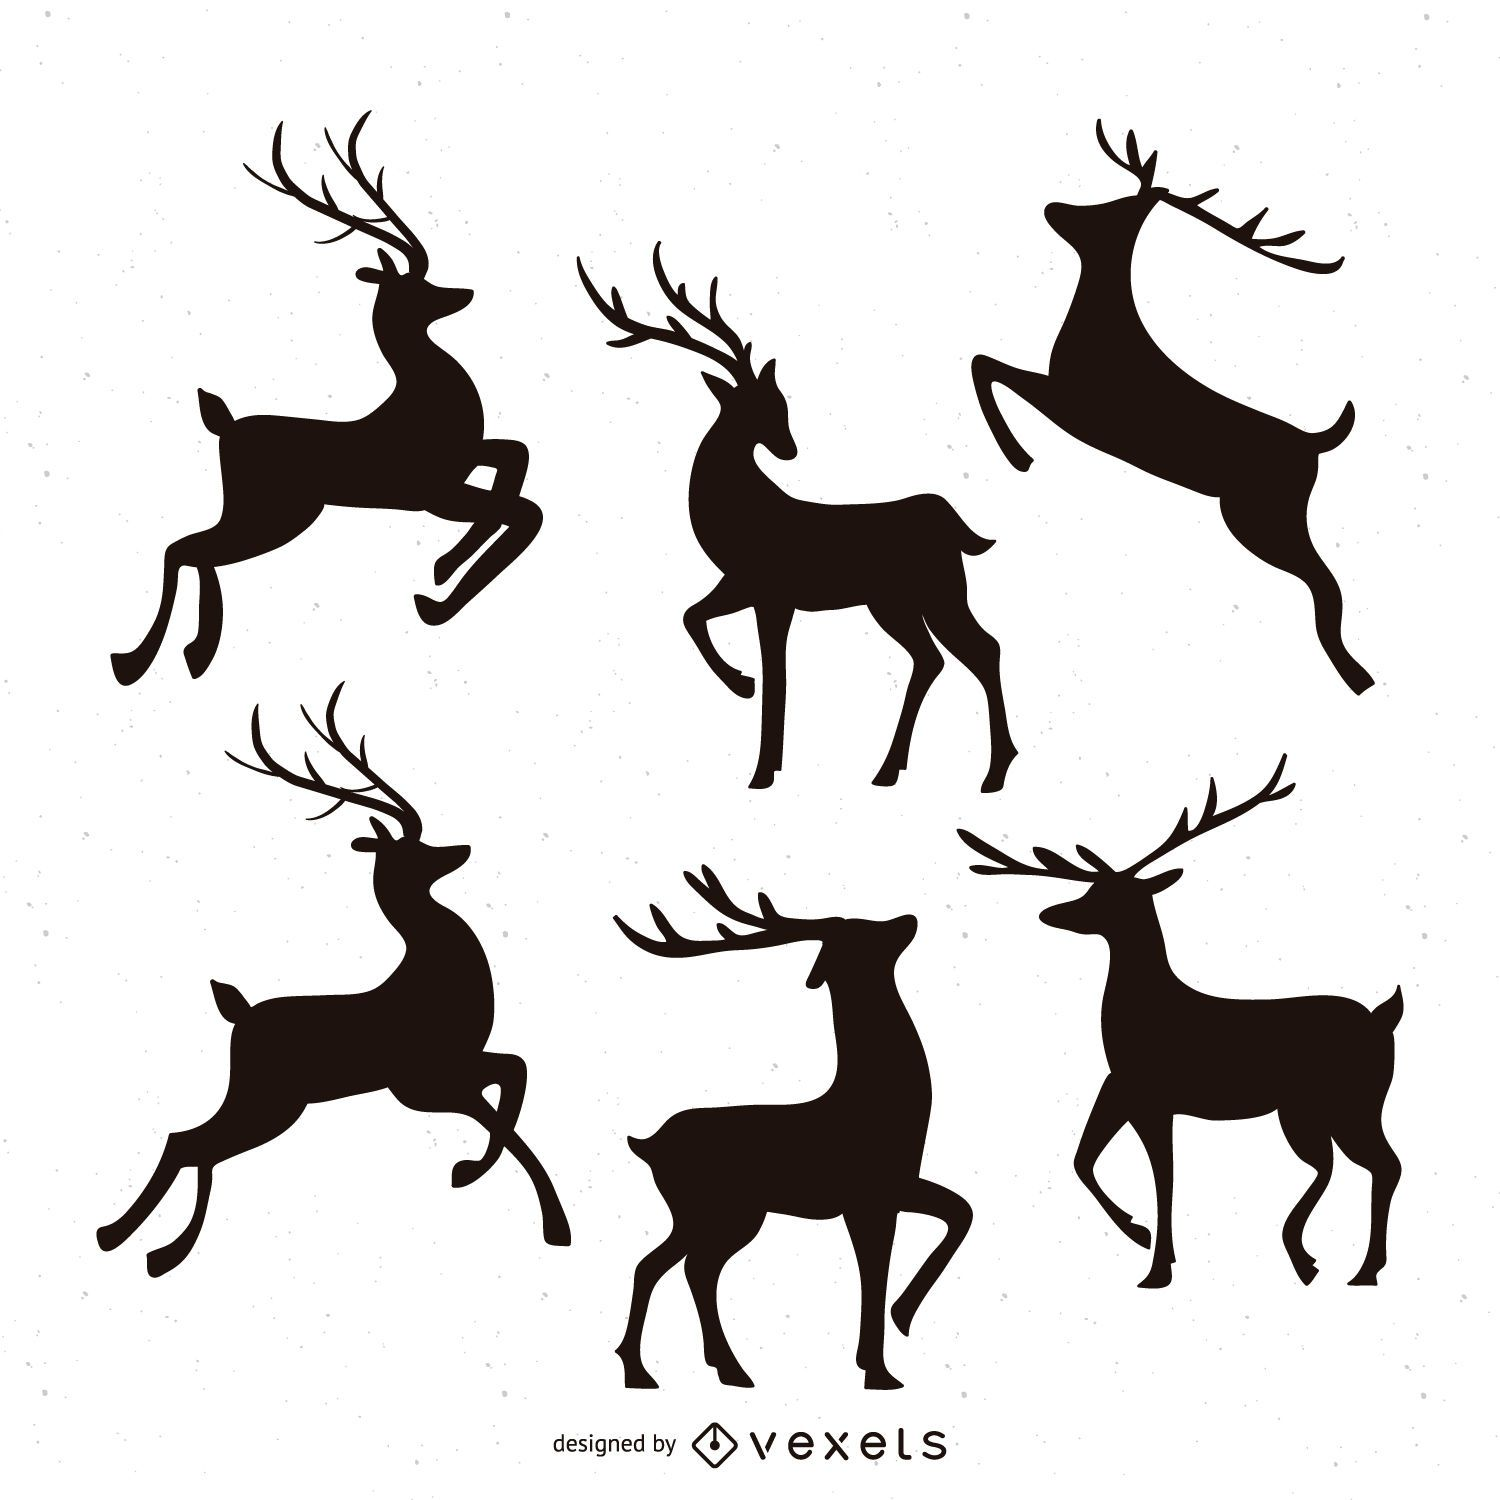 reindeer vector graphics to download rh vexels com reindeer vector free reindeer vector christmas